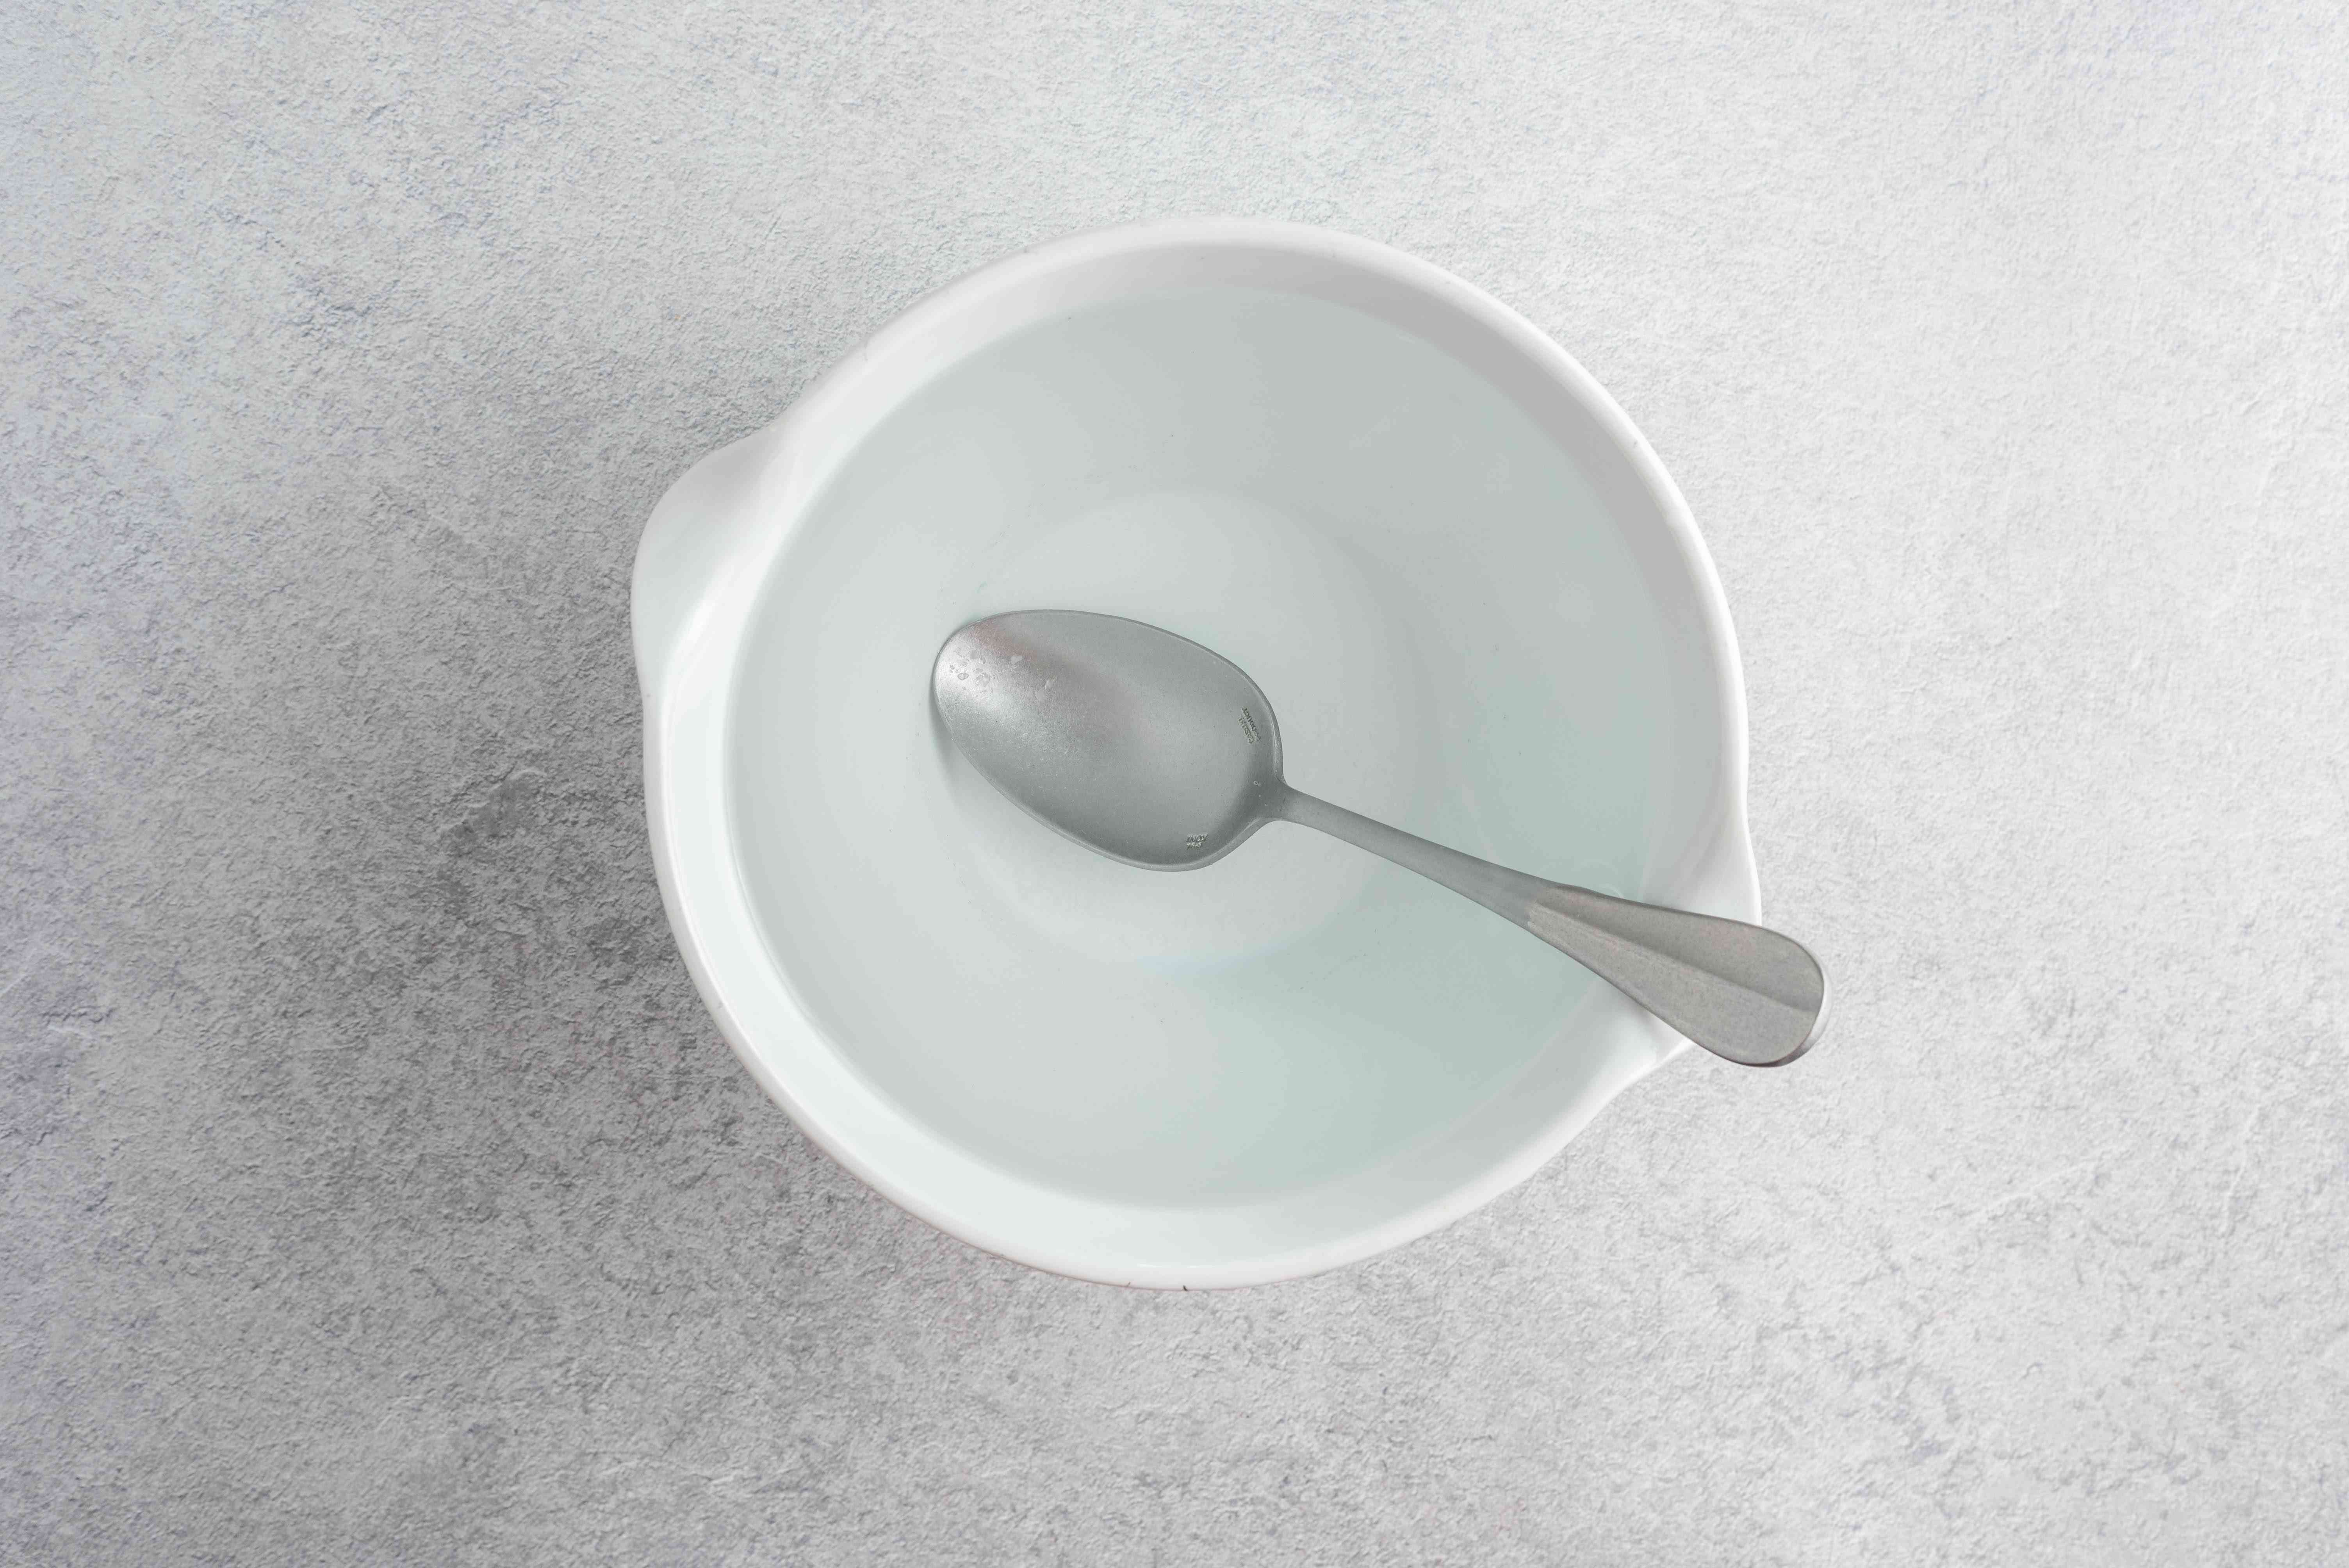 Water and salt mixed with a metal spoon in a white bowl